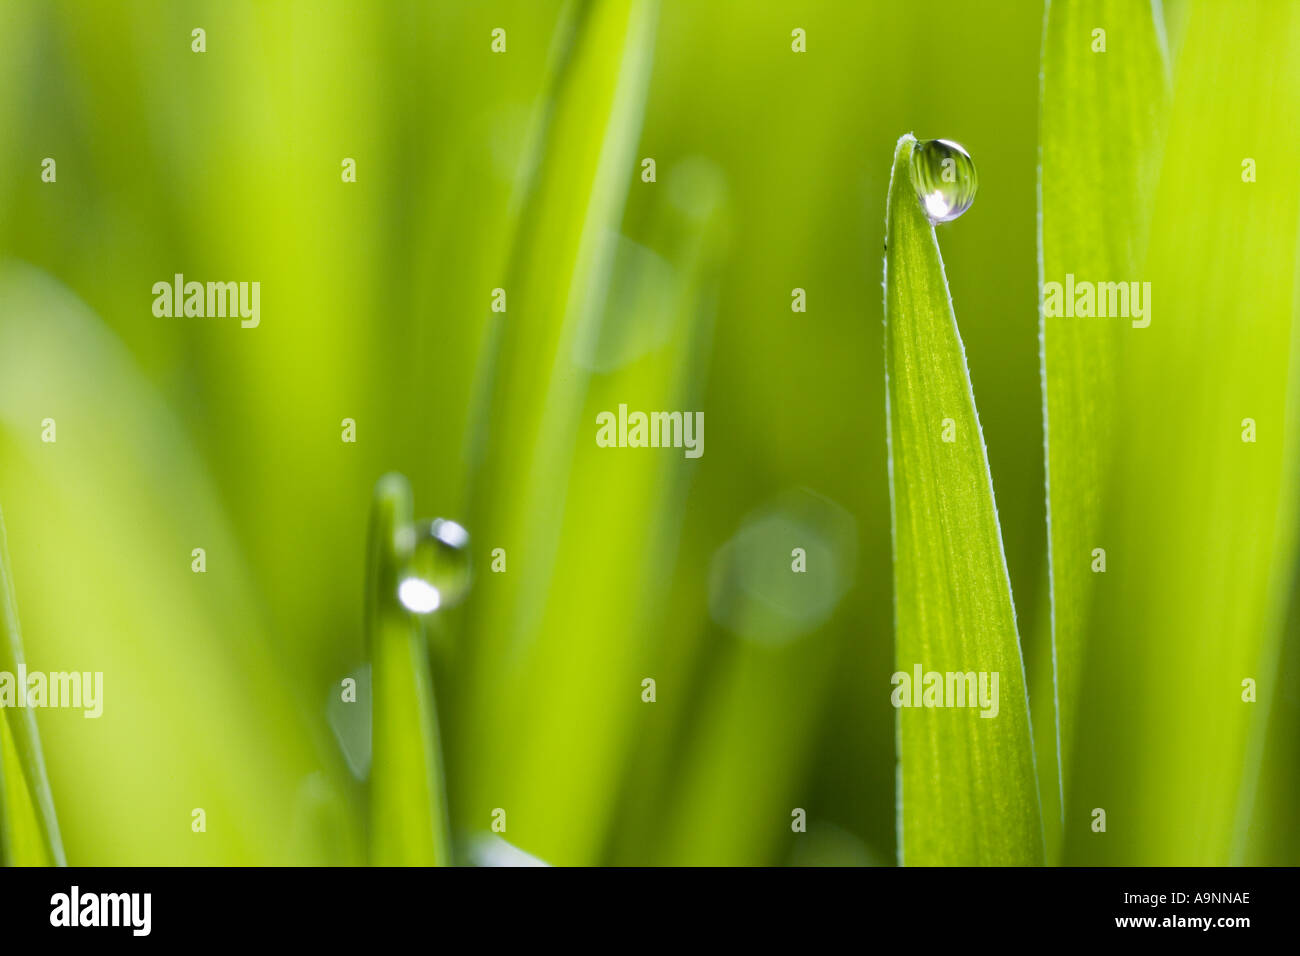 Drops of water on blades of grass - Stock Image